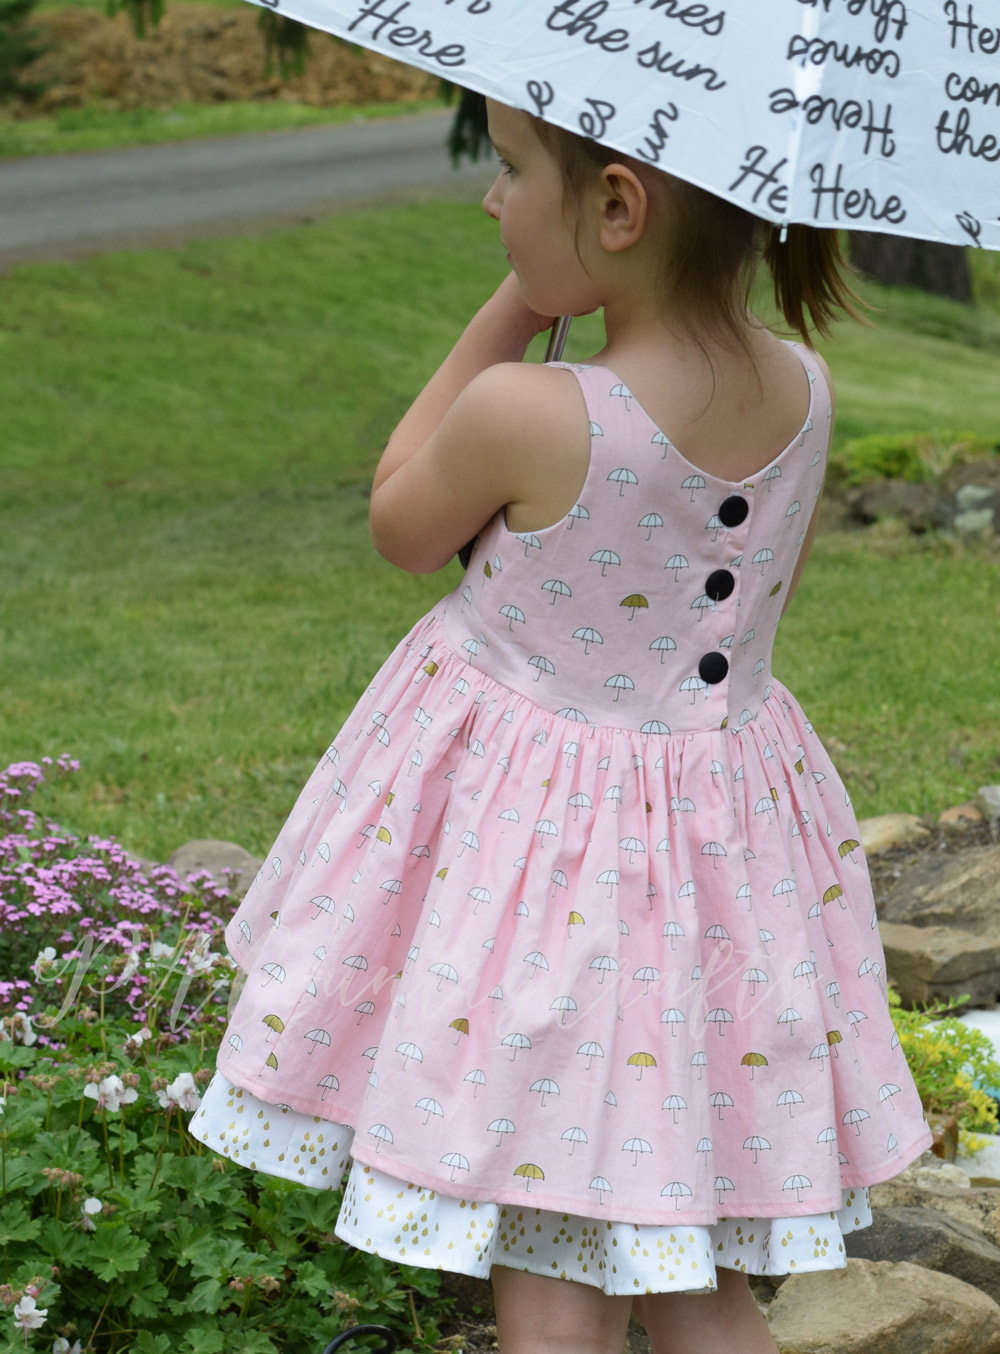 Sleeveless girls dress in When Skies Are Grey fabric by Simple Simon and Co